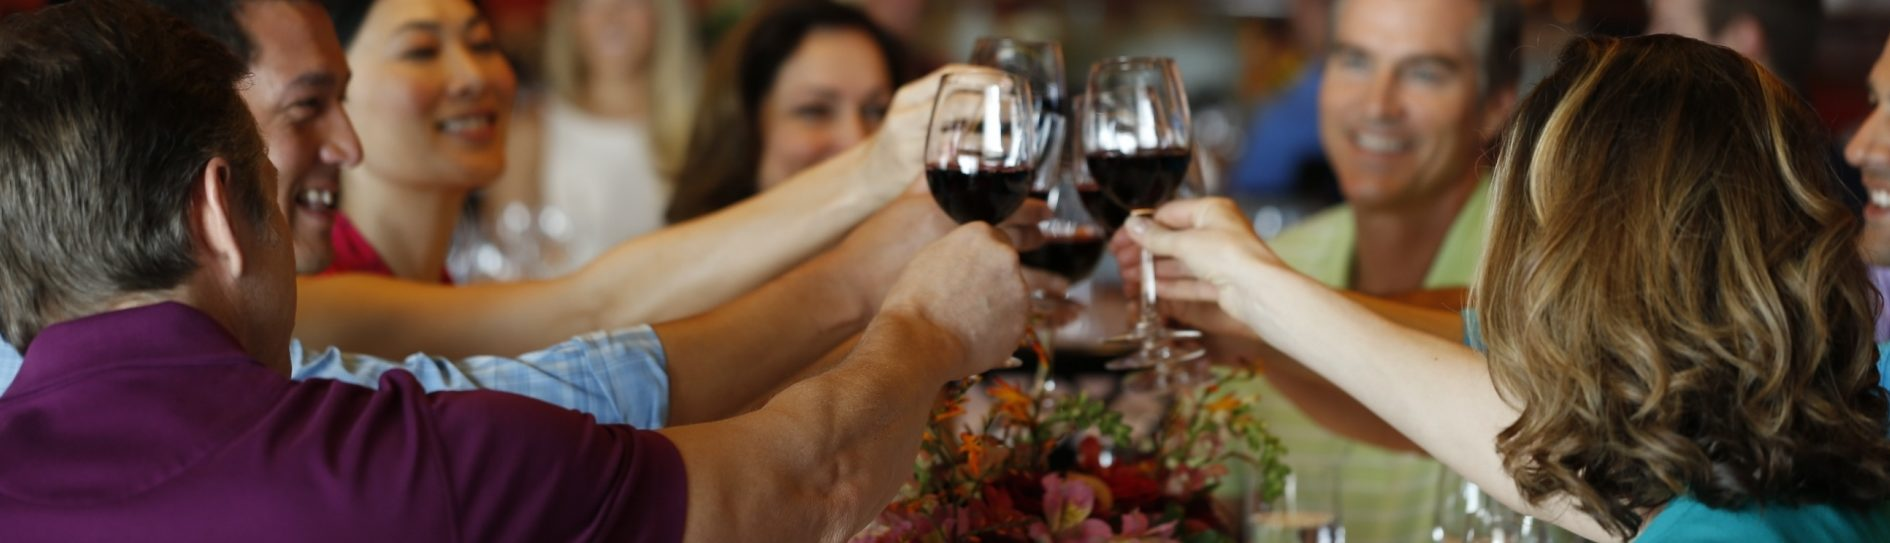 group of millennial travelers toasting with wine